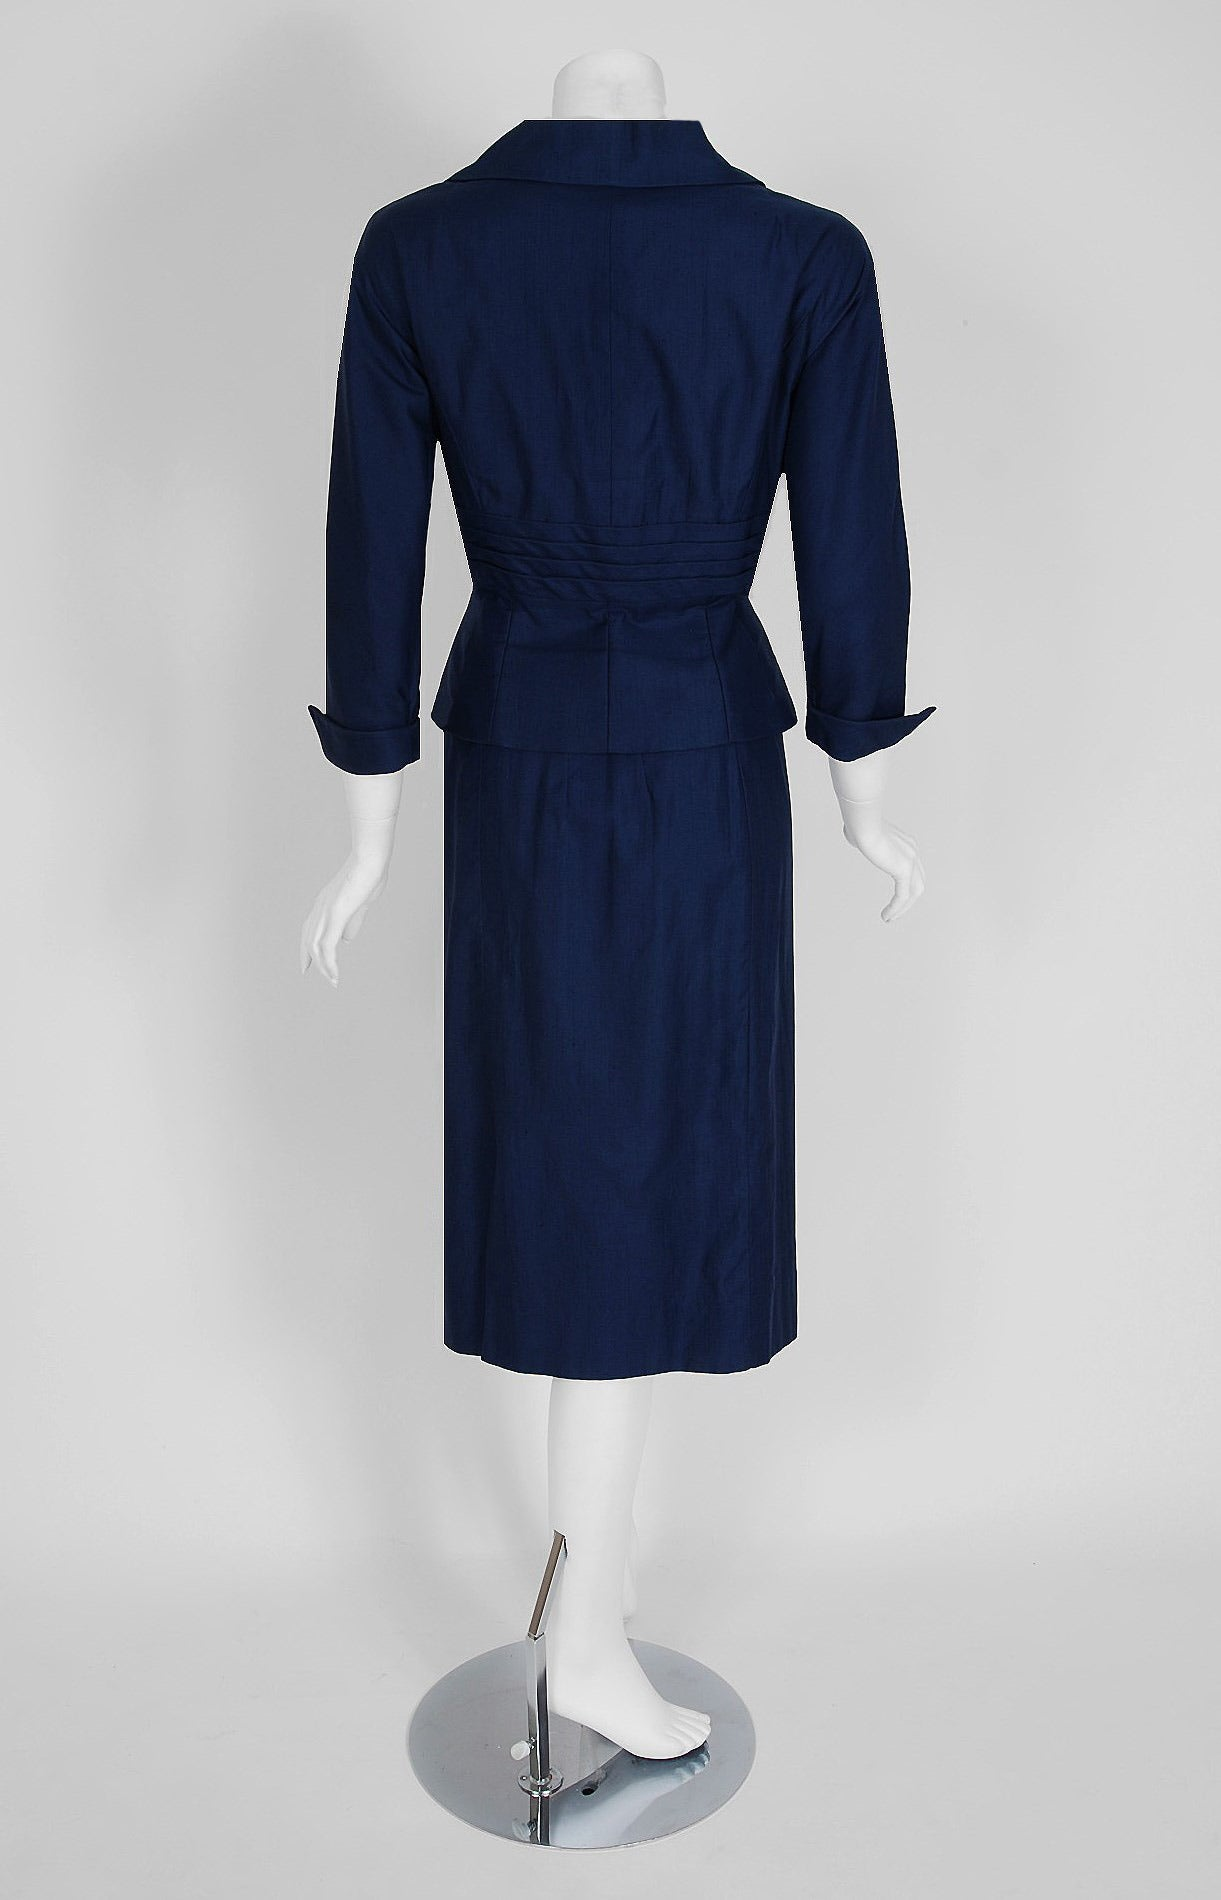 1940's Don Loper Navy-Blue Silk Tailored Hourglass Noir Pencil-Skirt Suit 4